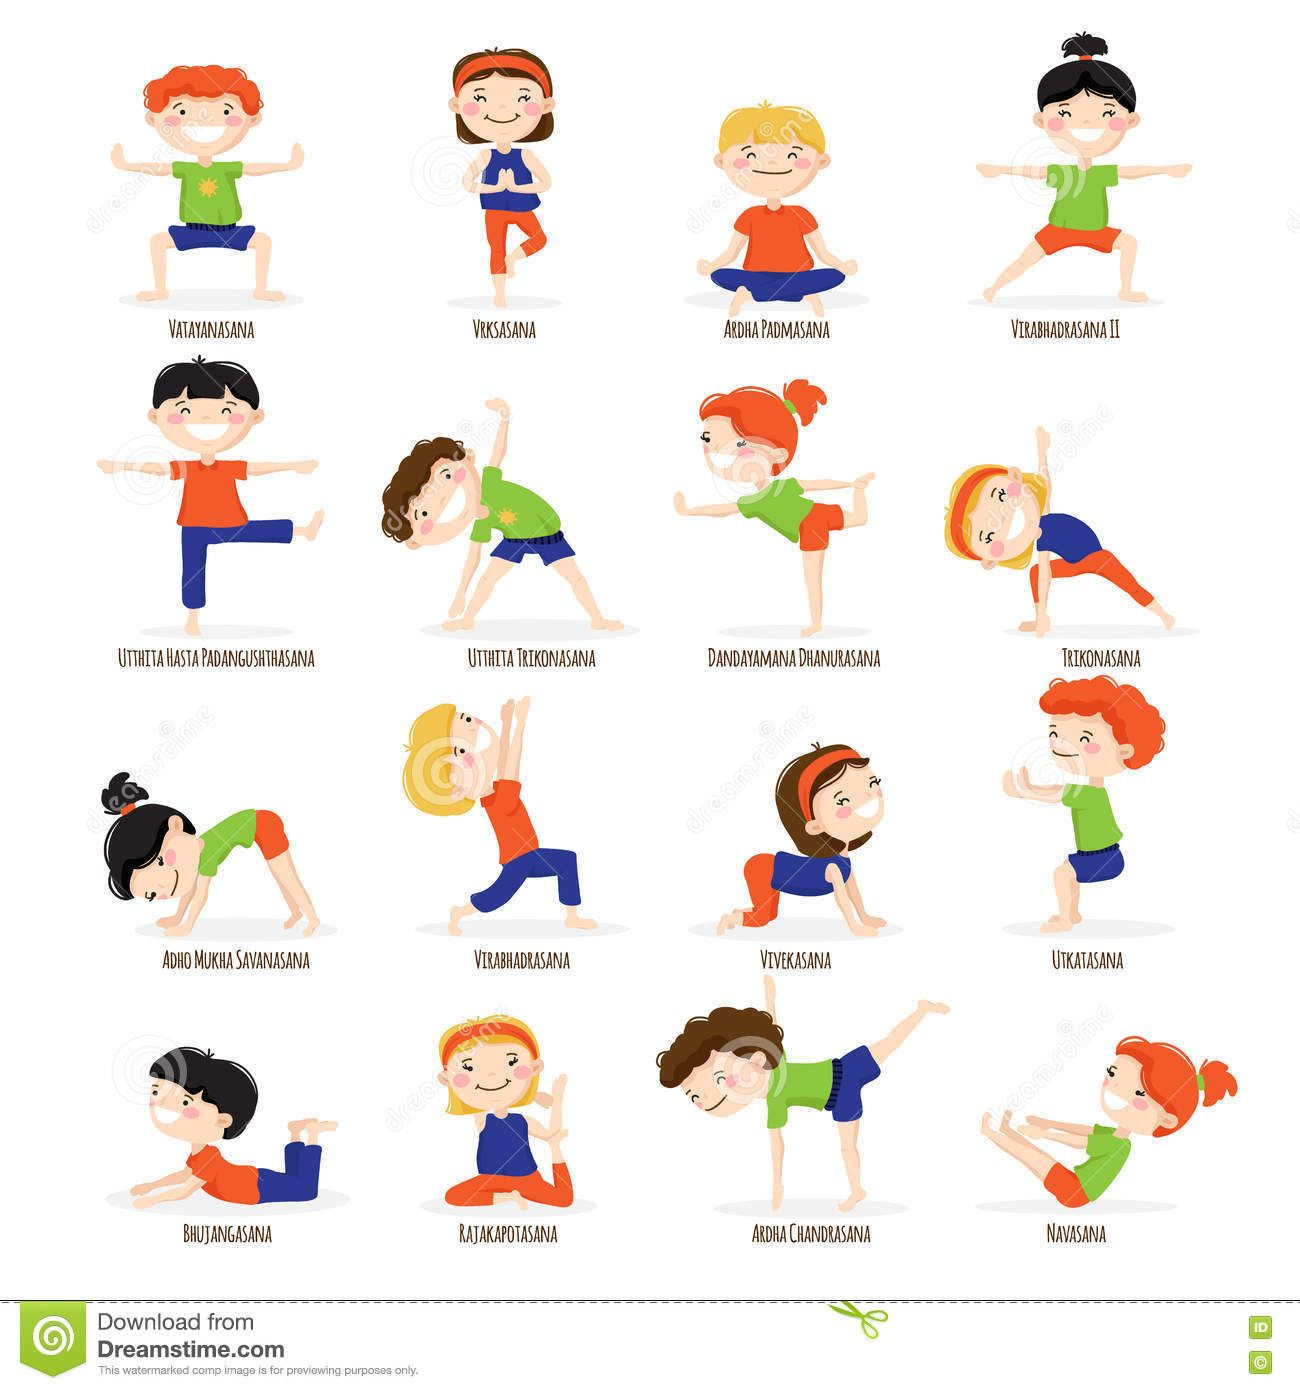 Kids Children Yoga Poses Cartoon Set Download From Over 65 Million High Quality Stock Photos Images Vectors Childrens Yoga Kids Yoga Poses Preschool Yoga